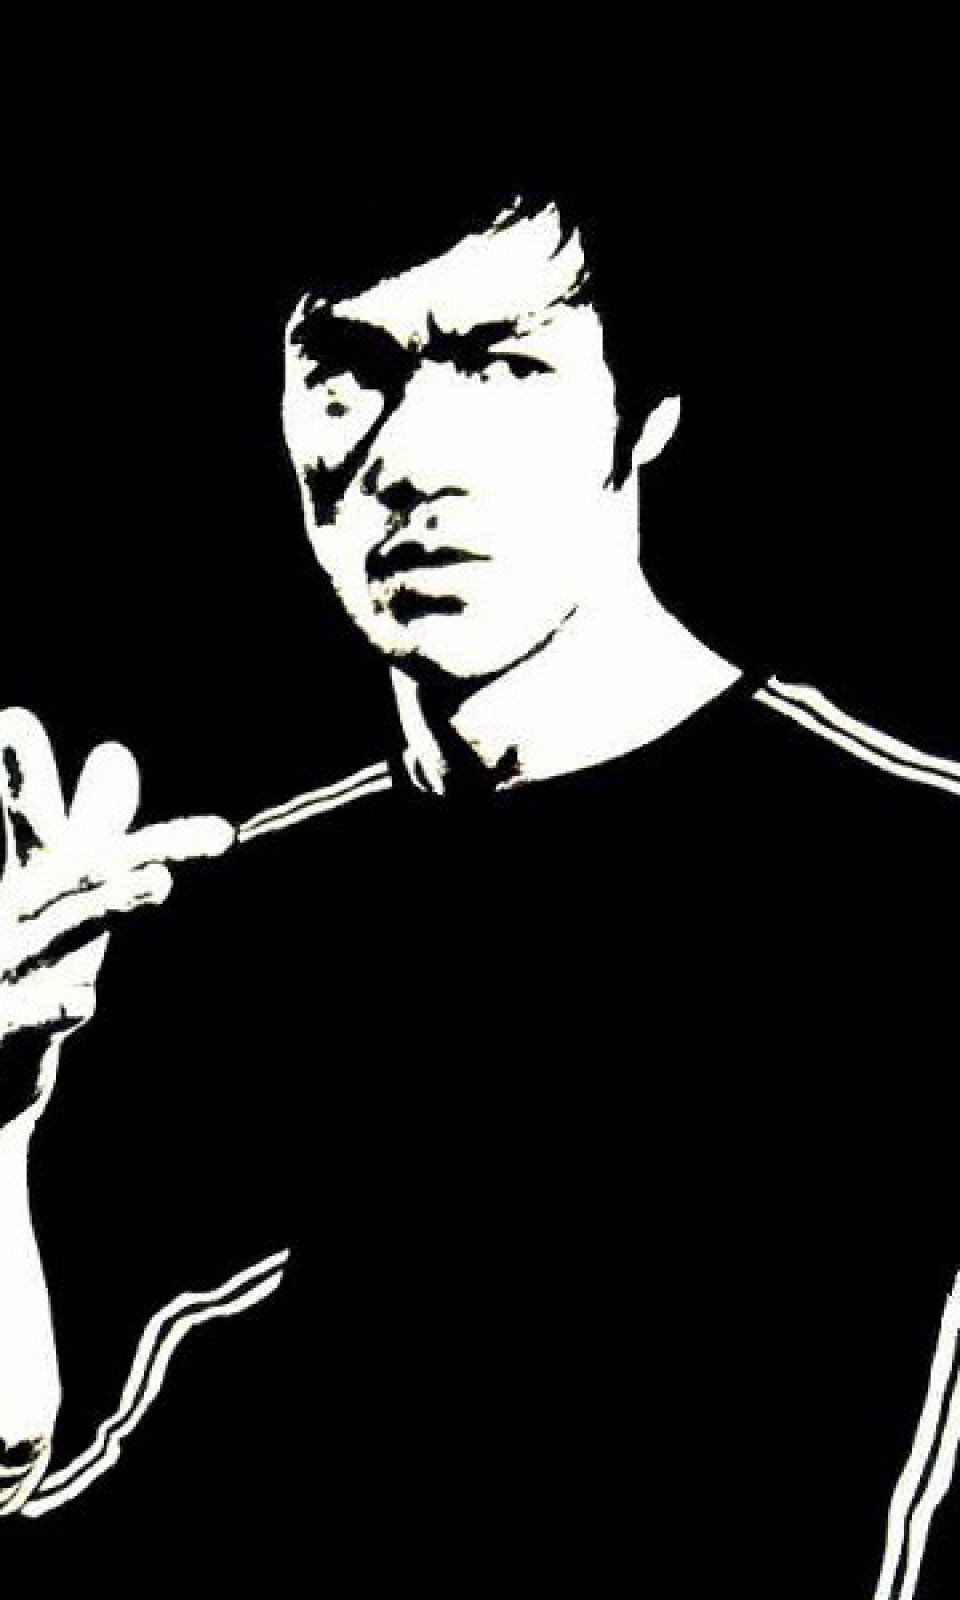 960x1600 - Bruce Lee Wallpapers 23